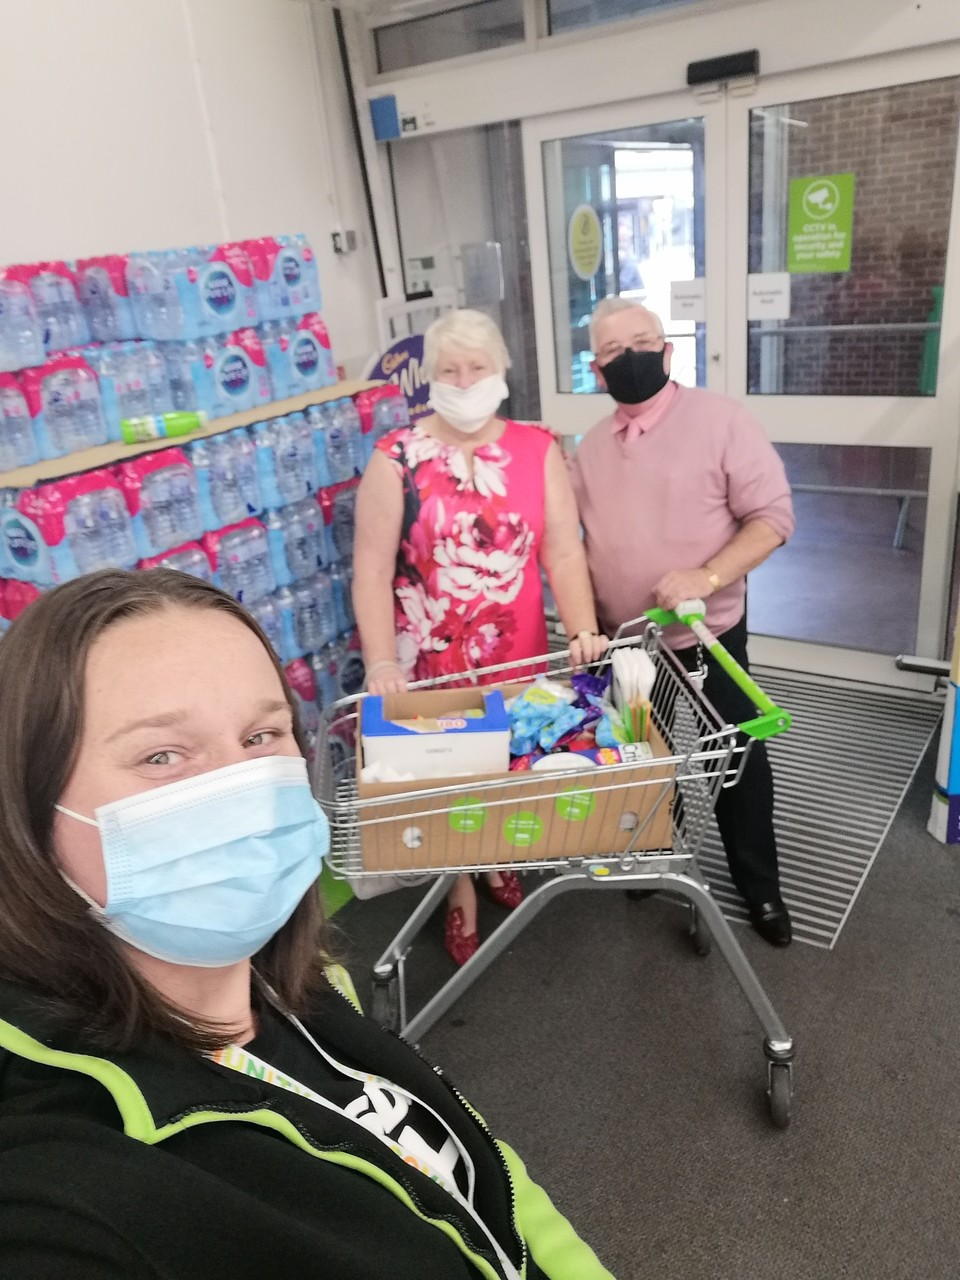 Donation for Johannesburg Gardens Community Centre | Asda Wythenshawe